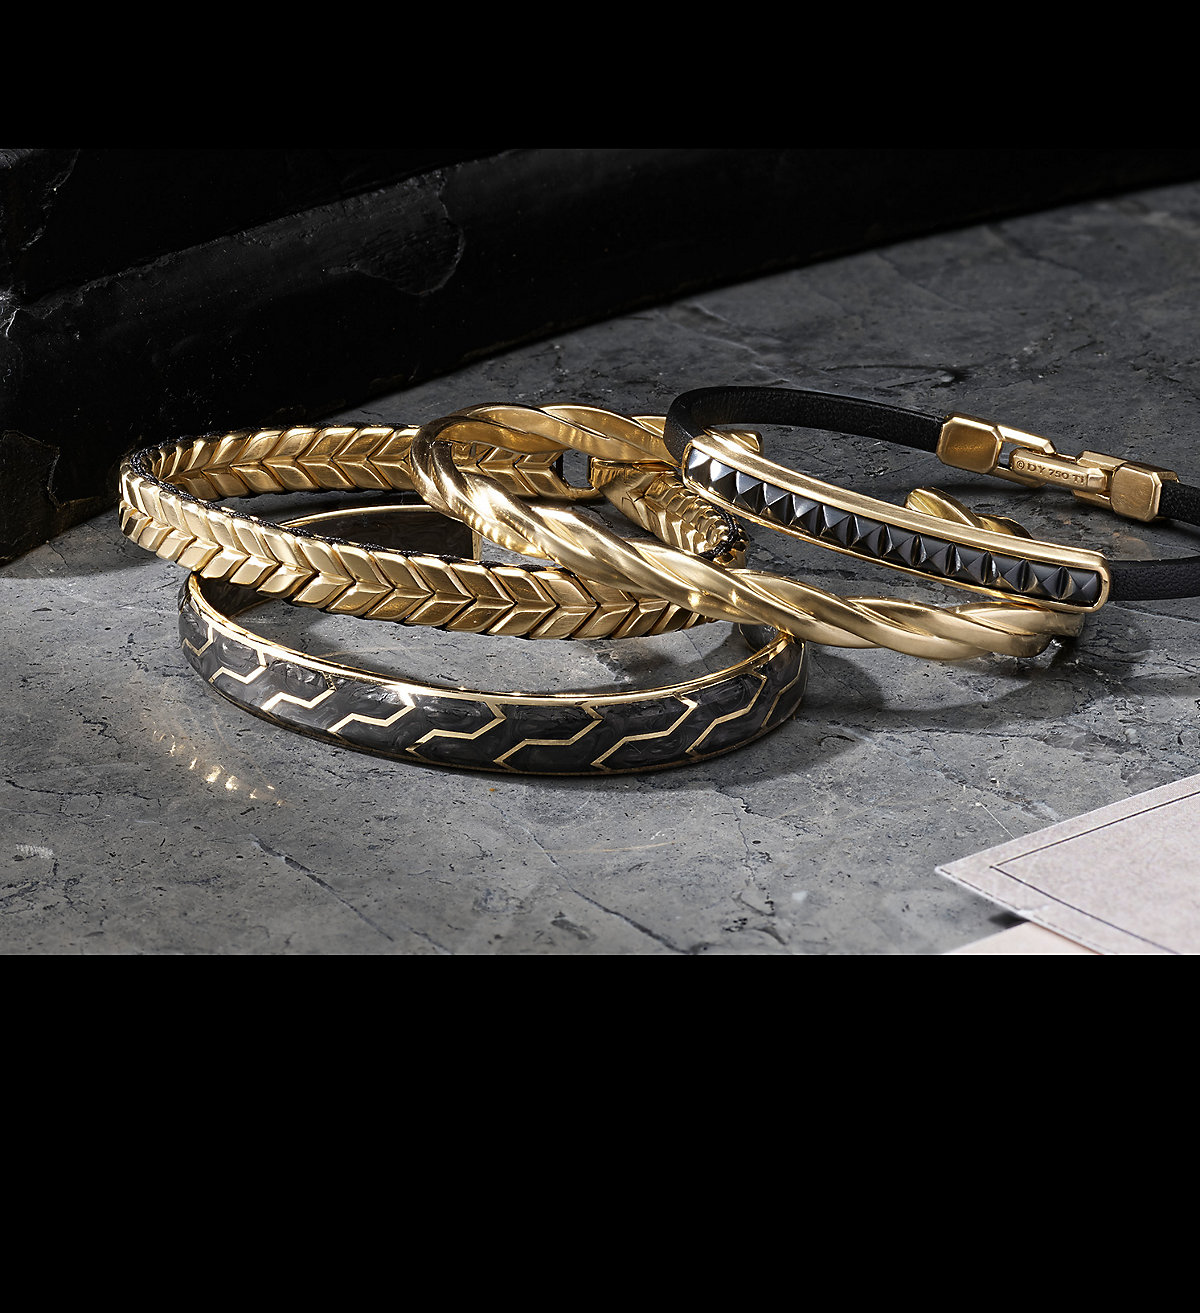 An image of four bracelets balanced atop each other on a grey marble surface with white papers and soft shadows. The jewelry is crafted from 18K yellow gold with or without black leather and black titanium in pyramid-shaped motifs or forged carbon.